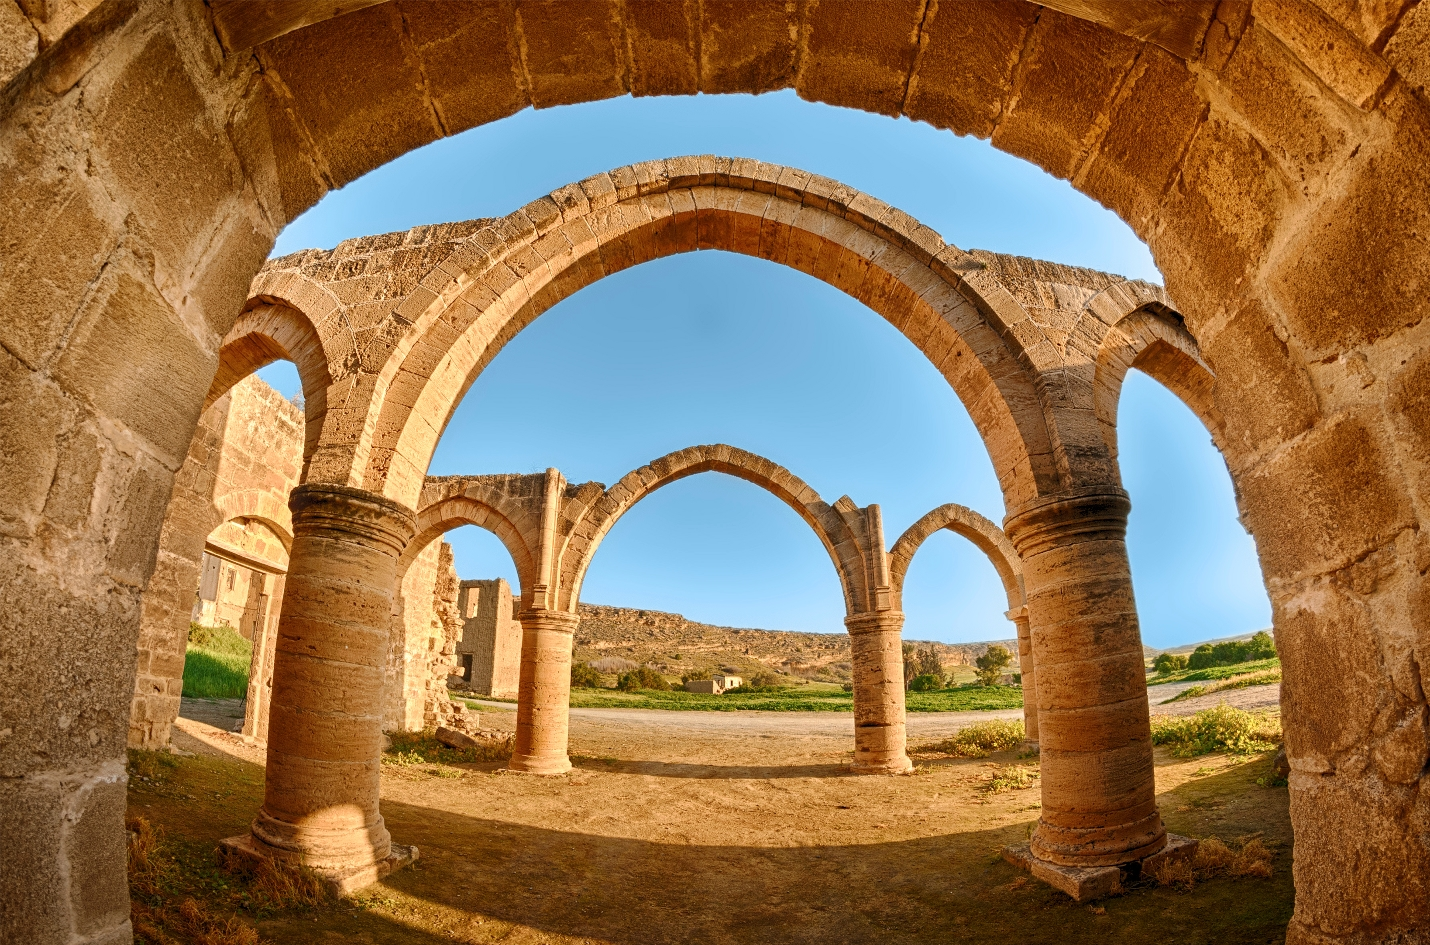 cyprus_nicosia_district_agios_sozomenos_temple_istock_000025430882large.jpg